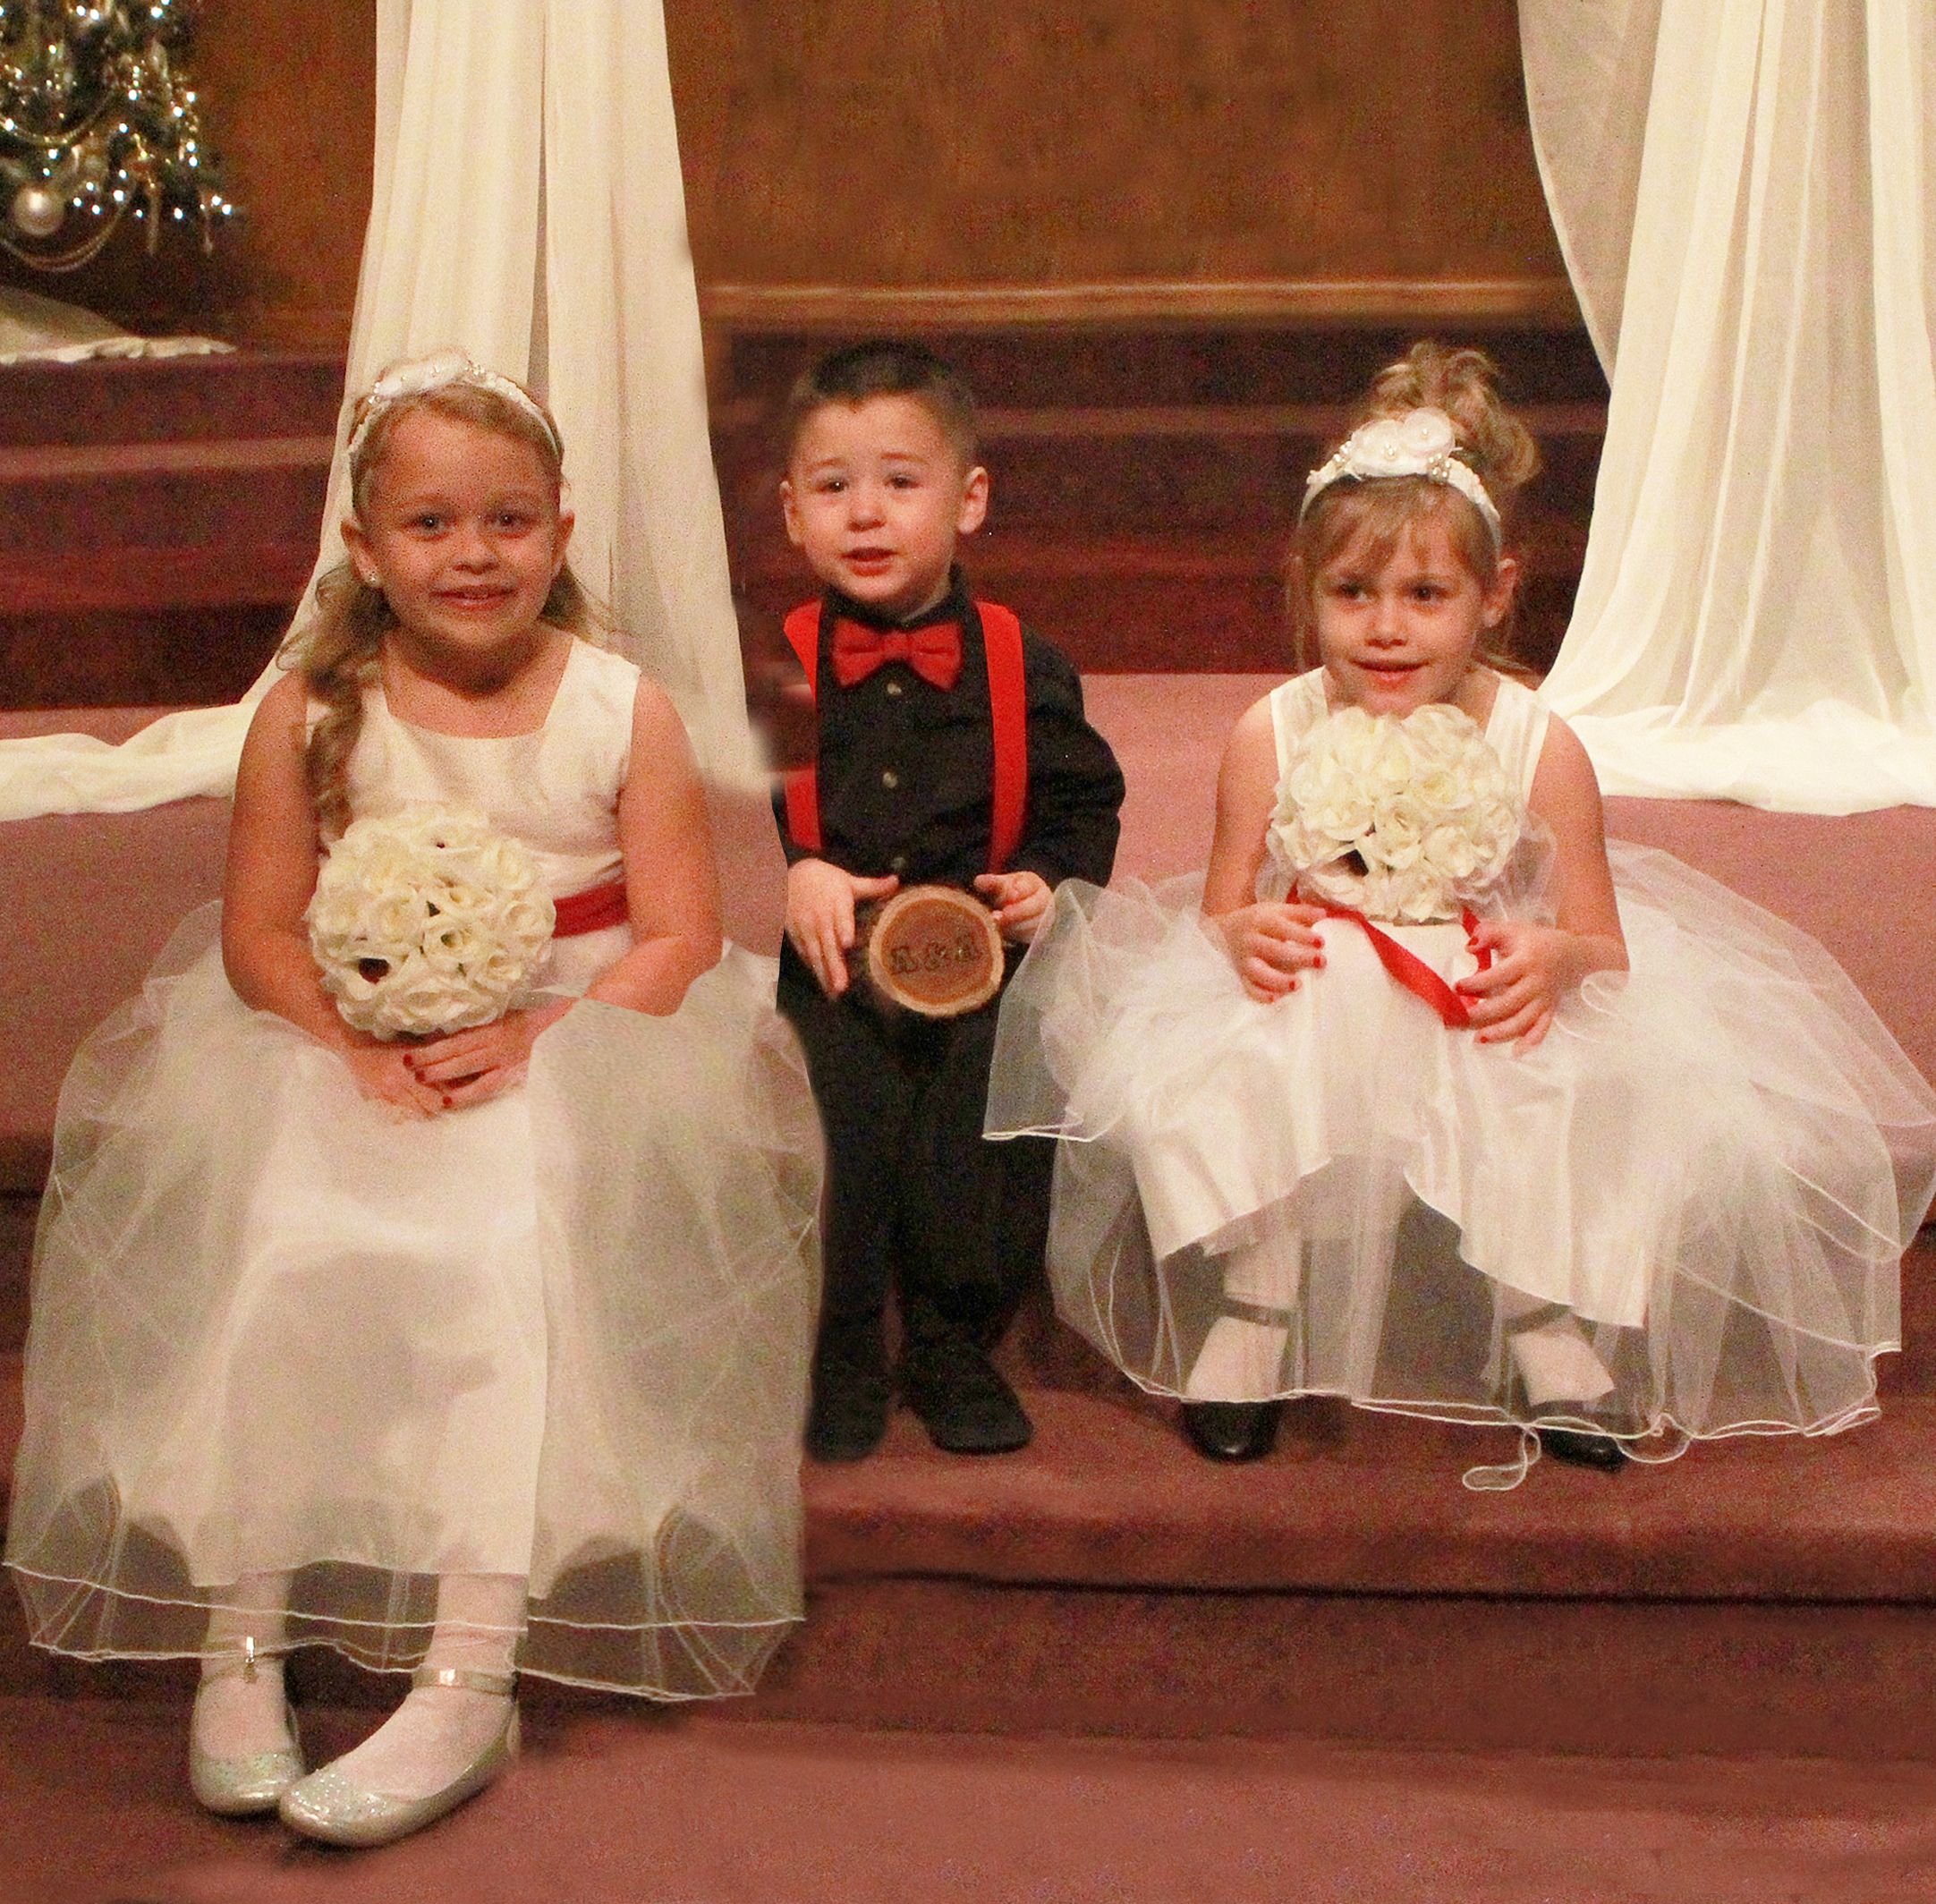 Ring Bearer/Flower Girl Attire